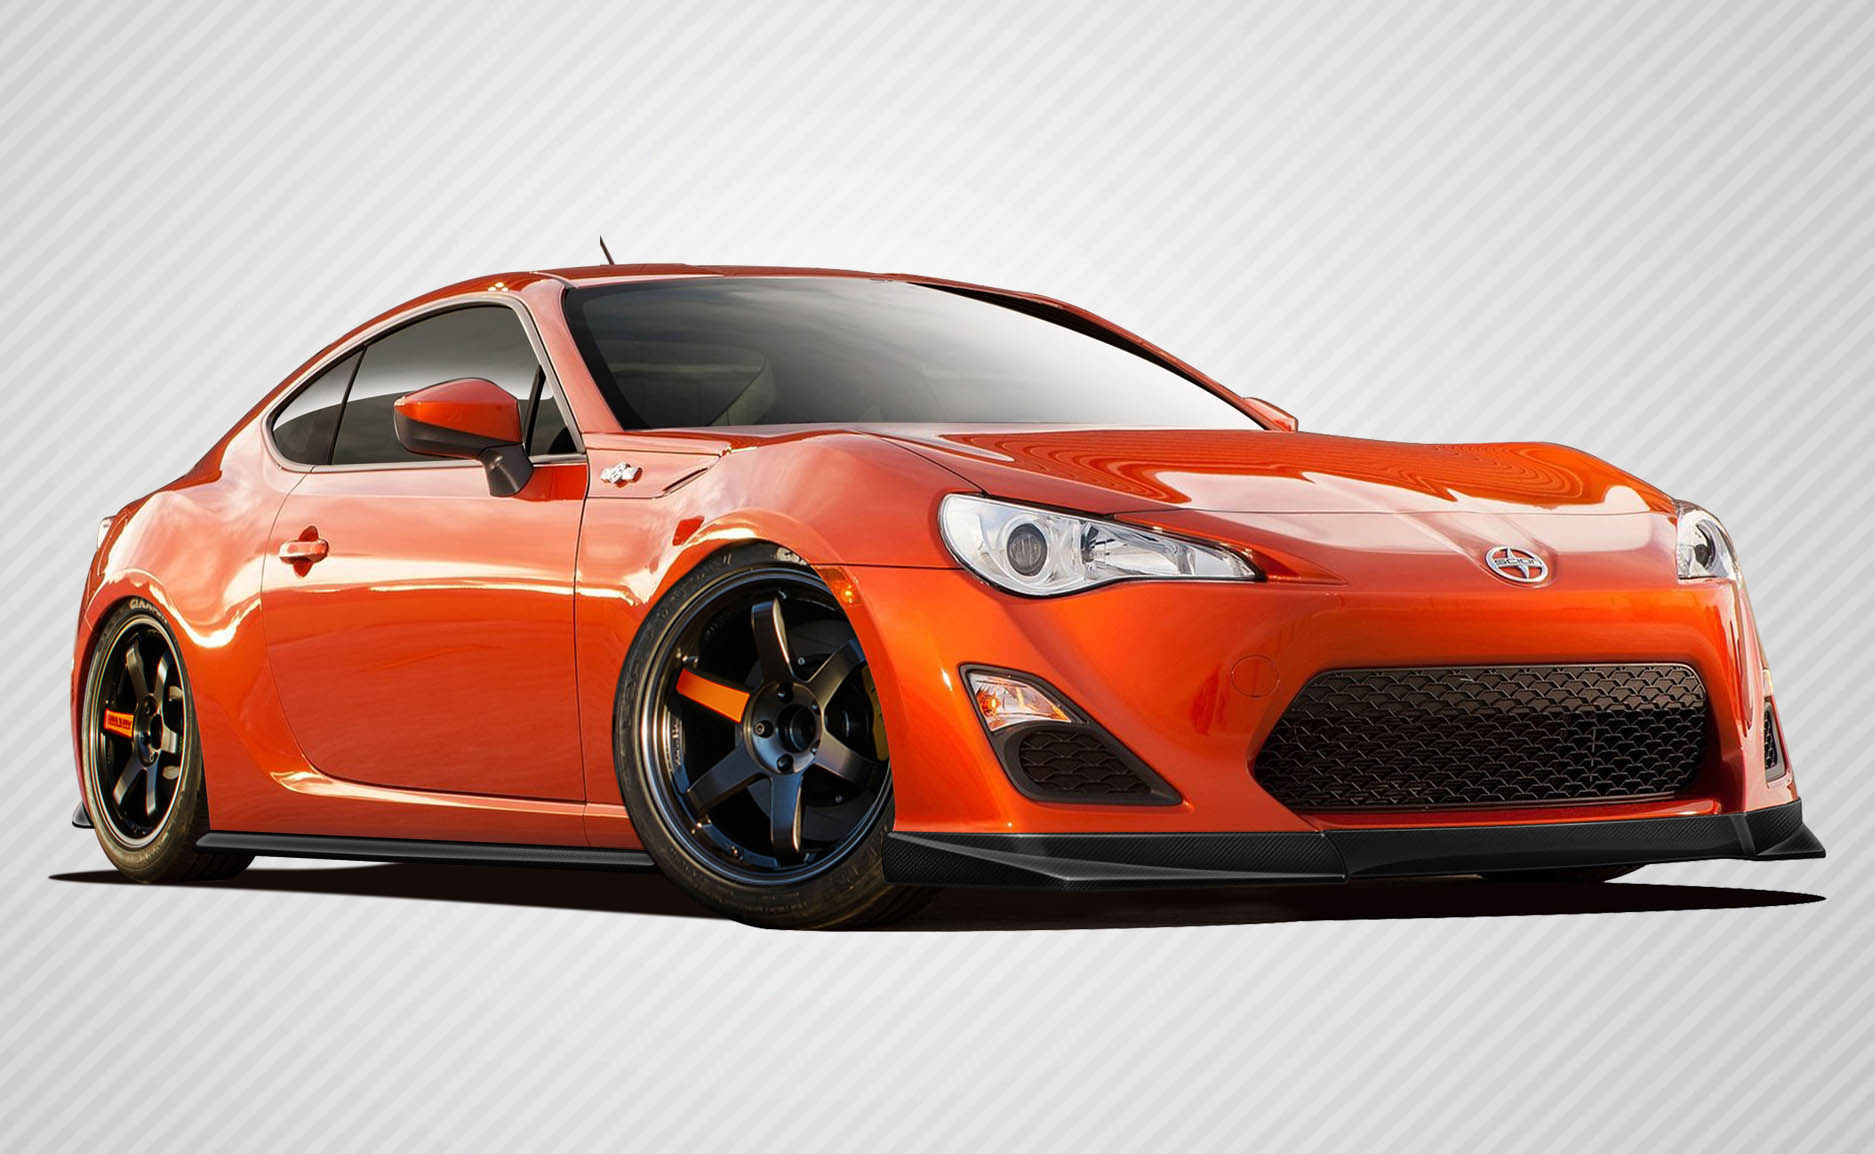 Body Kit Bodykit for 2016 Scion FRS ALL - Scion FR-S Carbon Creations ST-C Body Kit - 5 Piece - Includes ST-C Front Lip Under Spoiler Air Dam